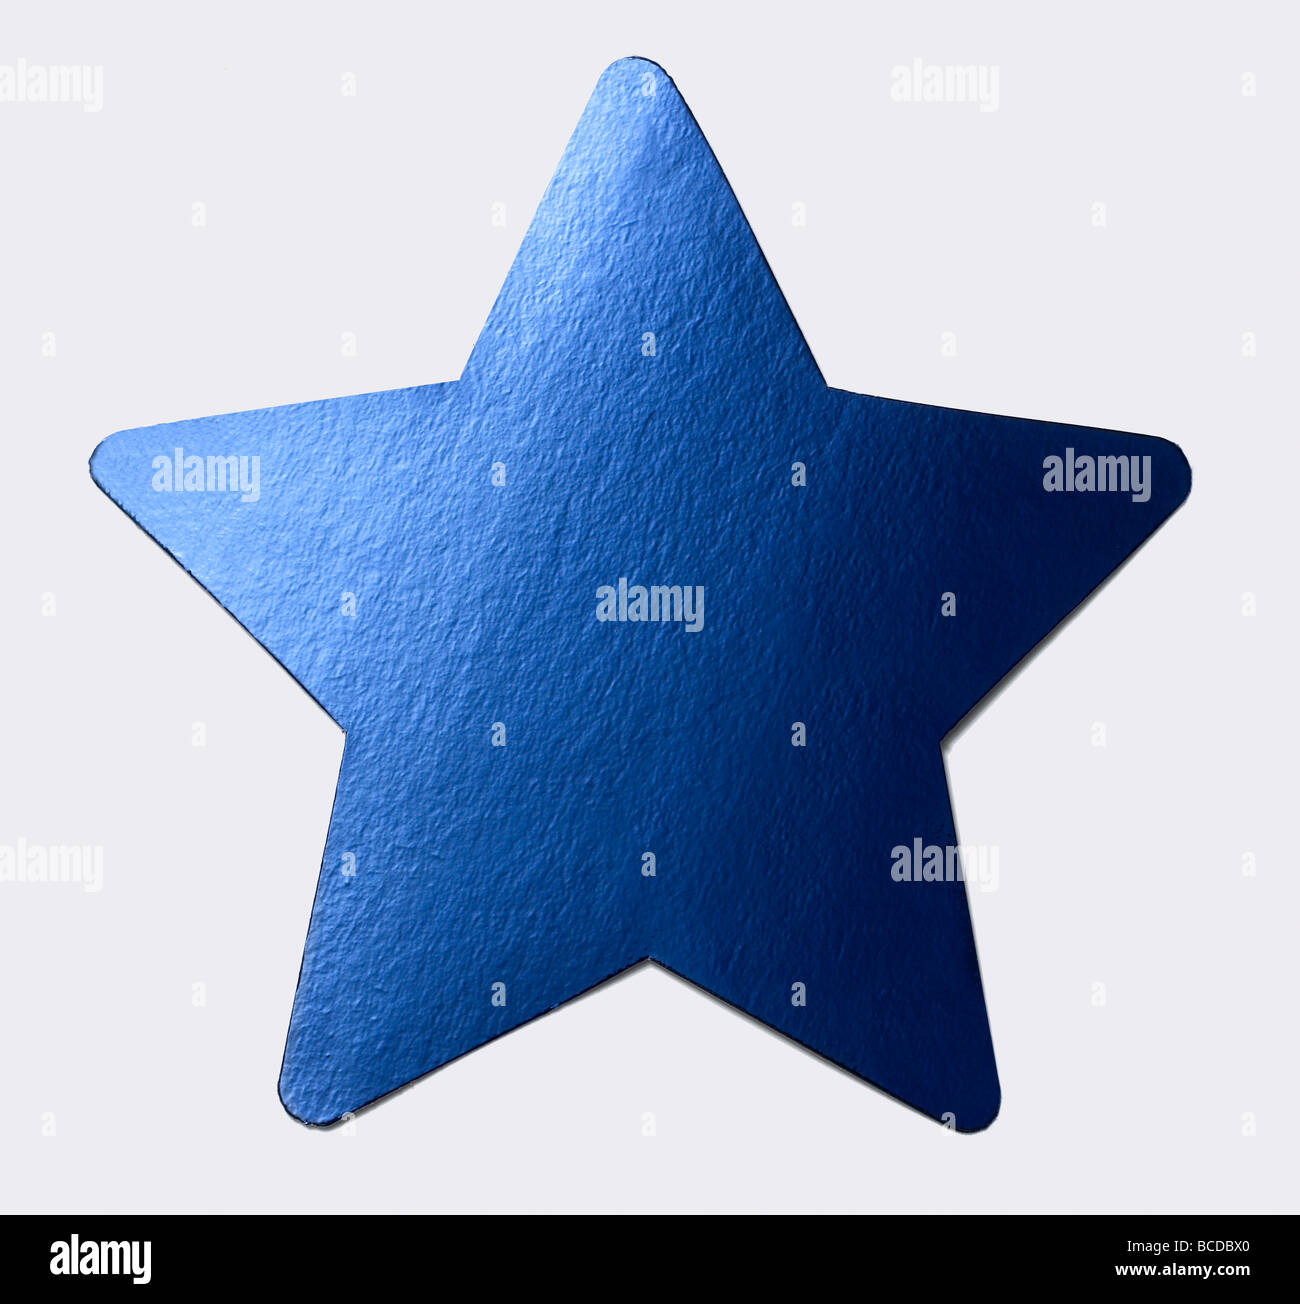 Blue star - Stock Image